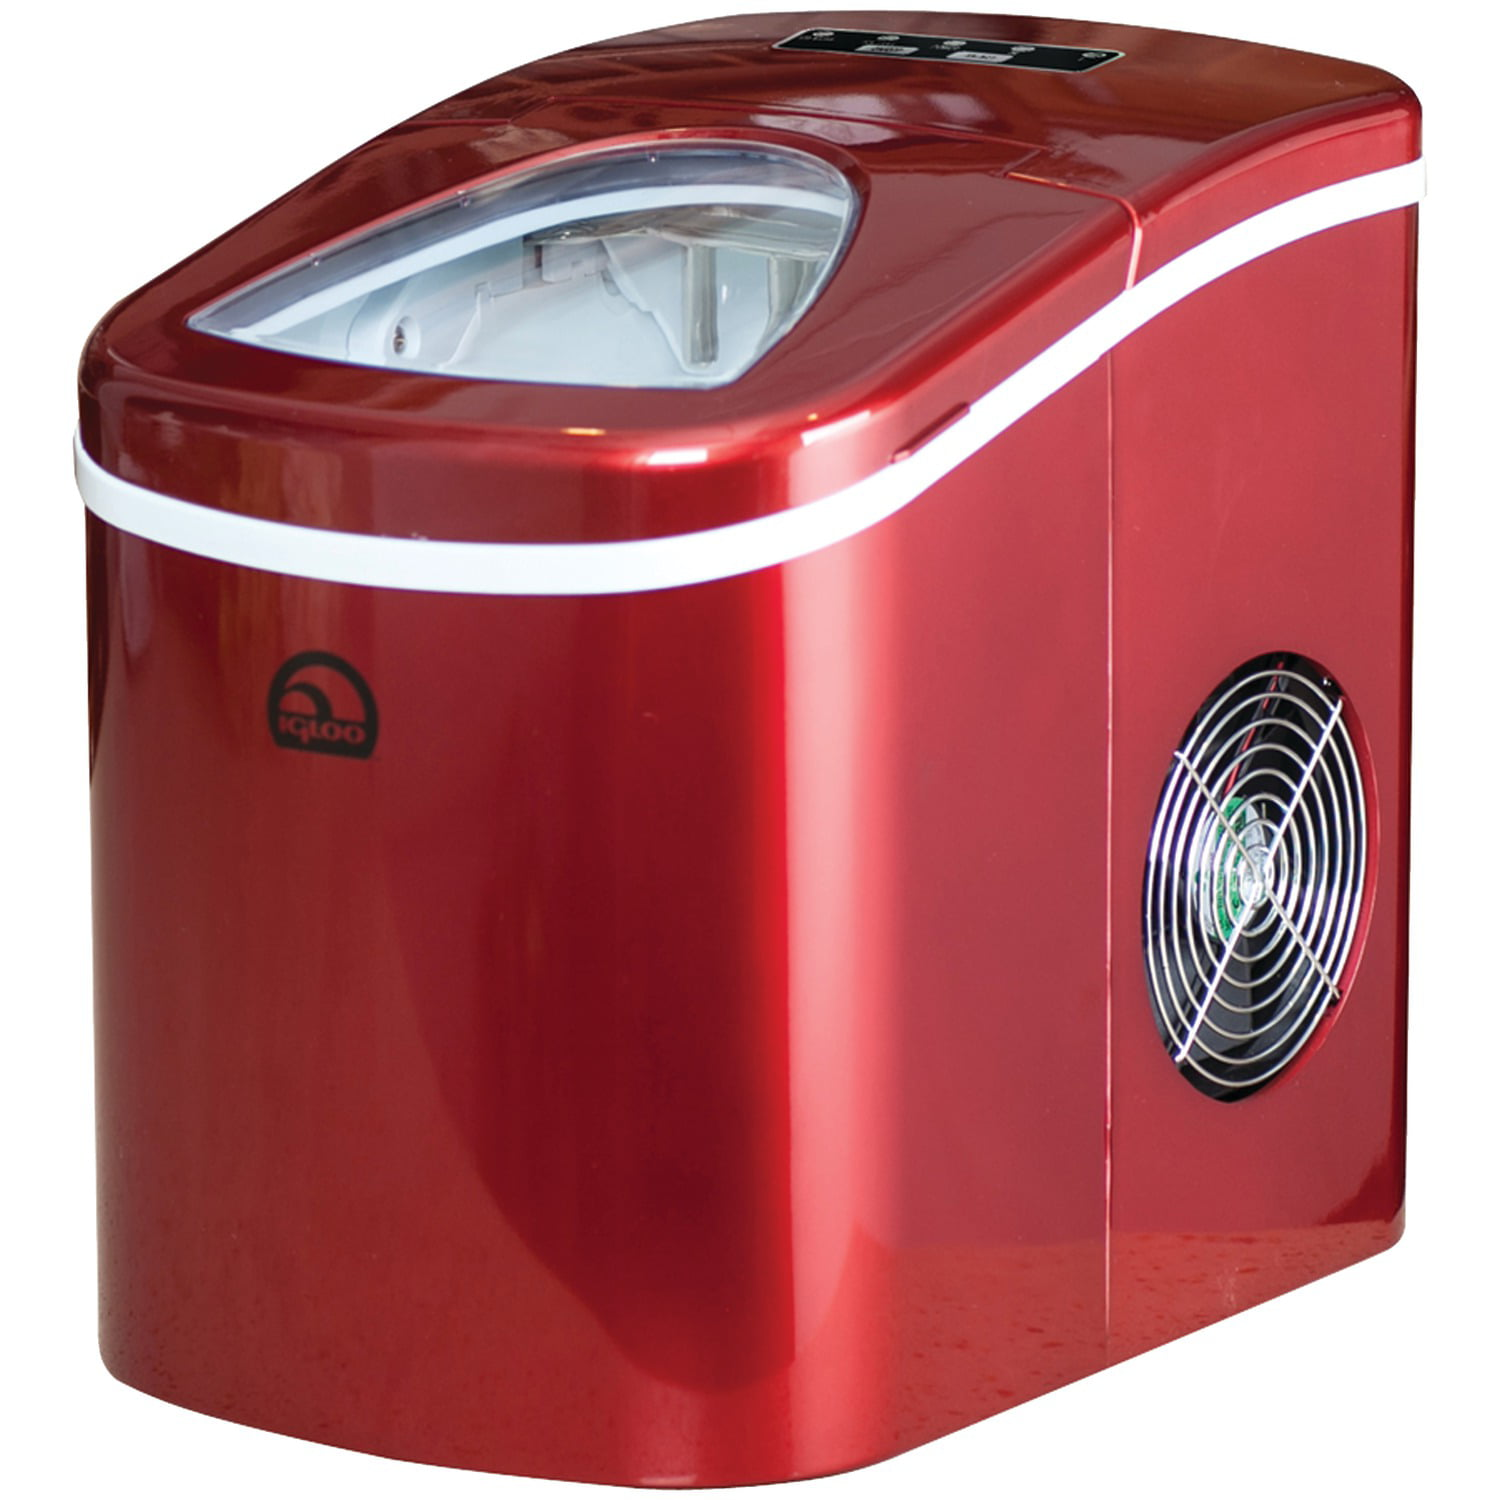 Igloo Compact Portable Ice Maker Ice108 Red Walmart Com Walmart Com